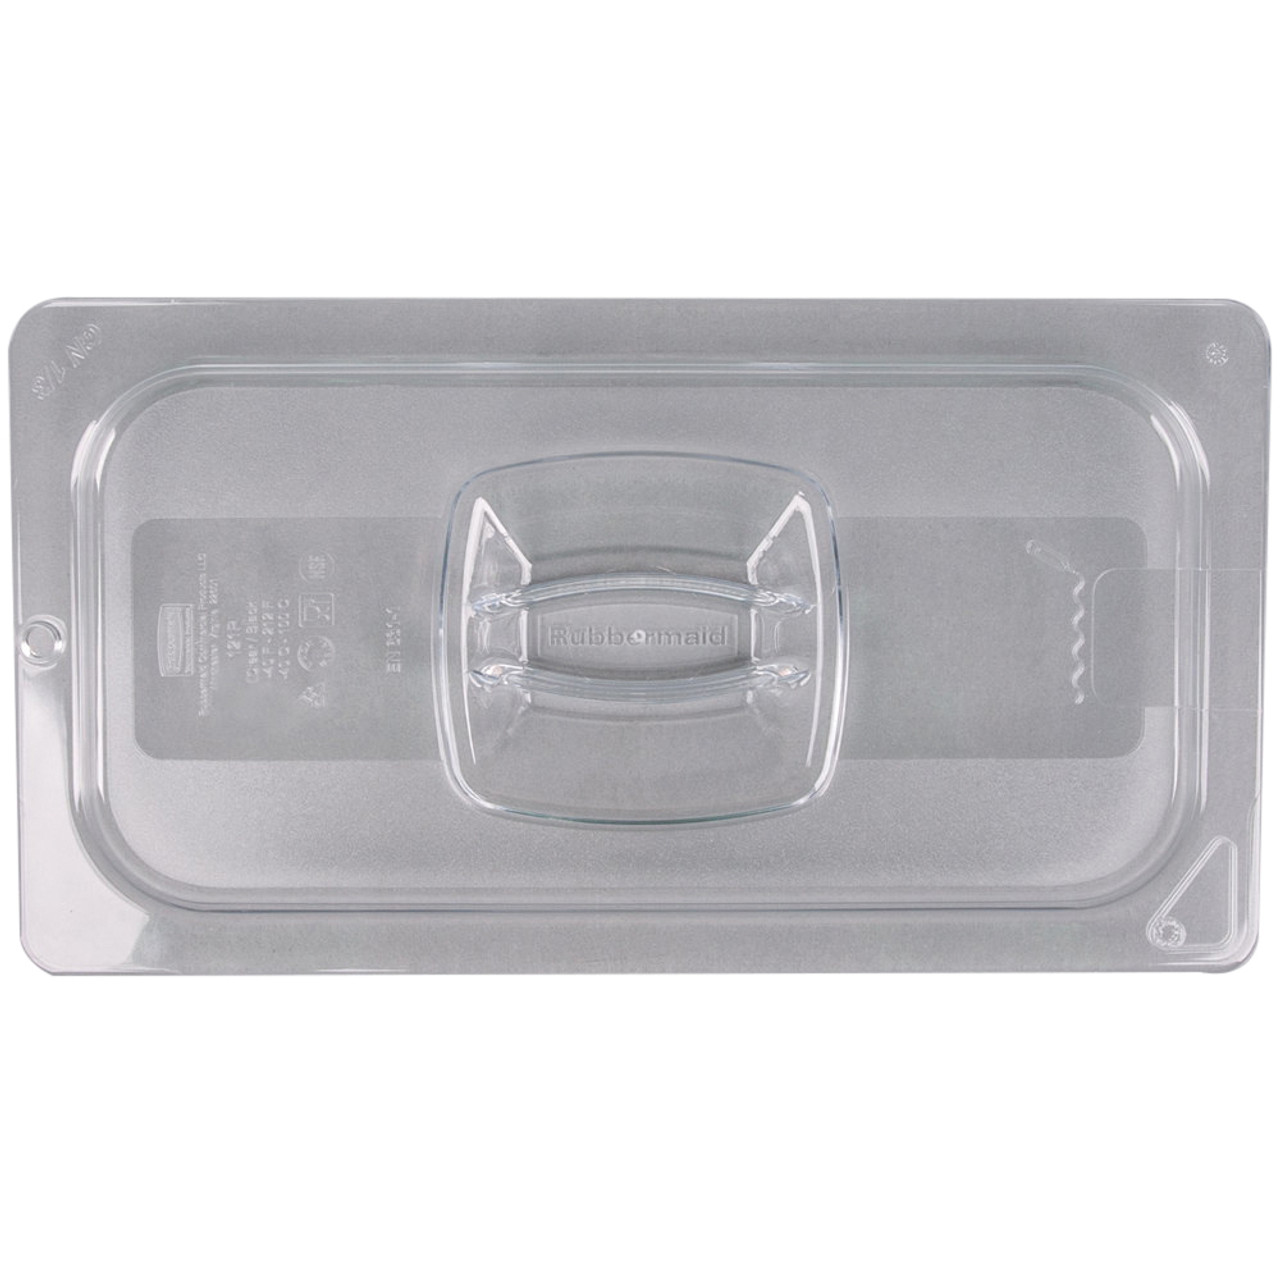 Rubbermaid Hard Cover 1/3 With Peg Hole - Clear